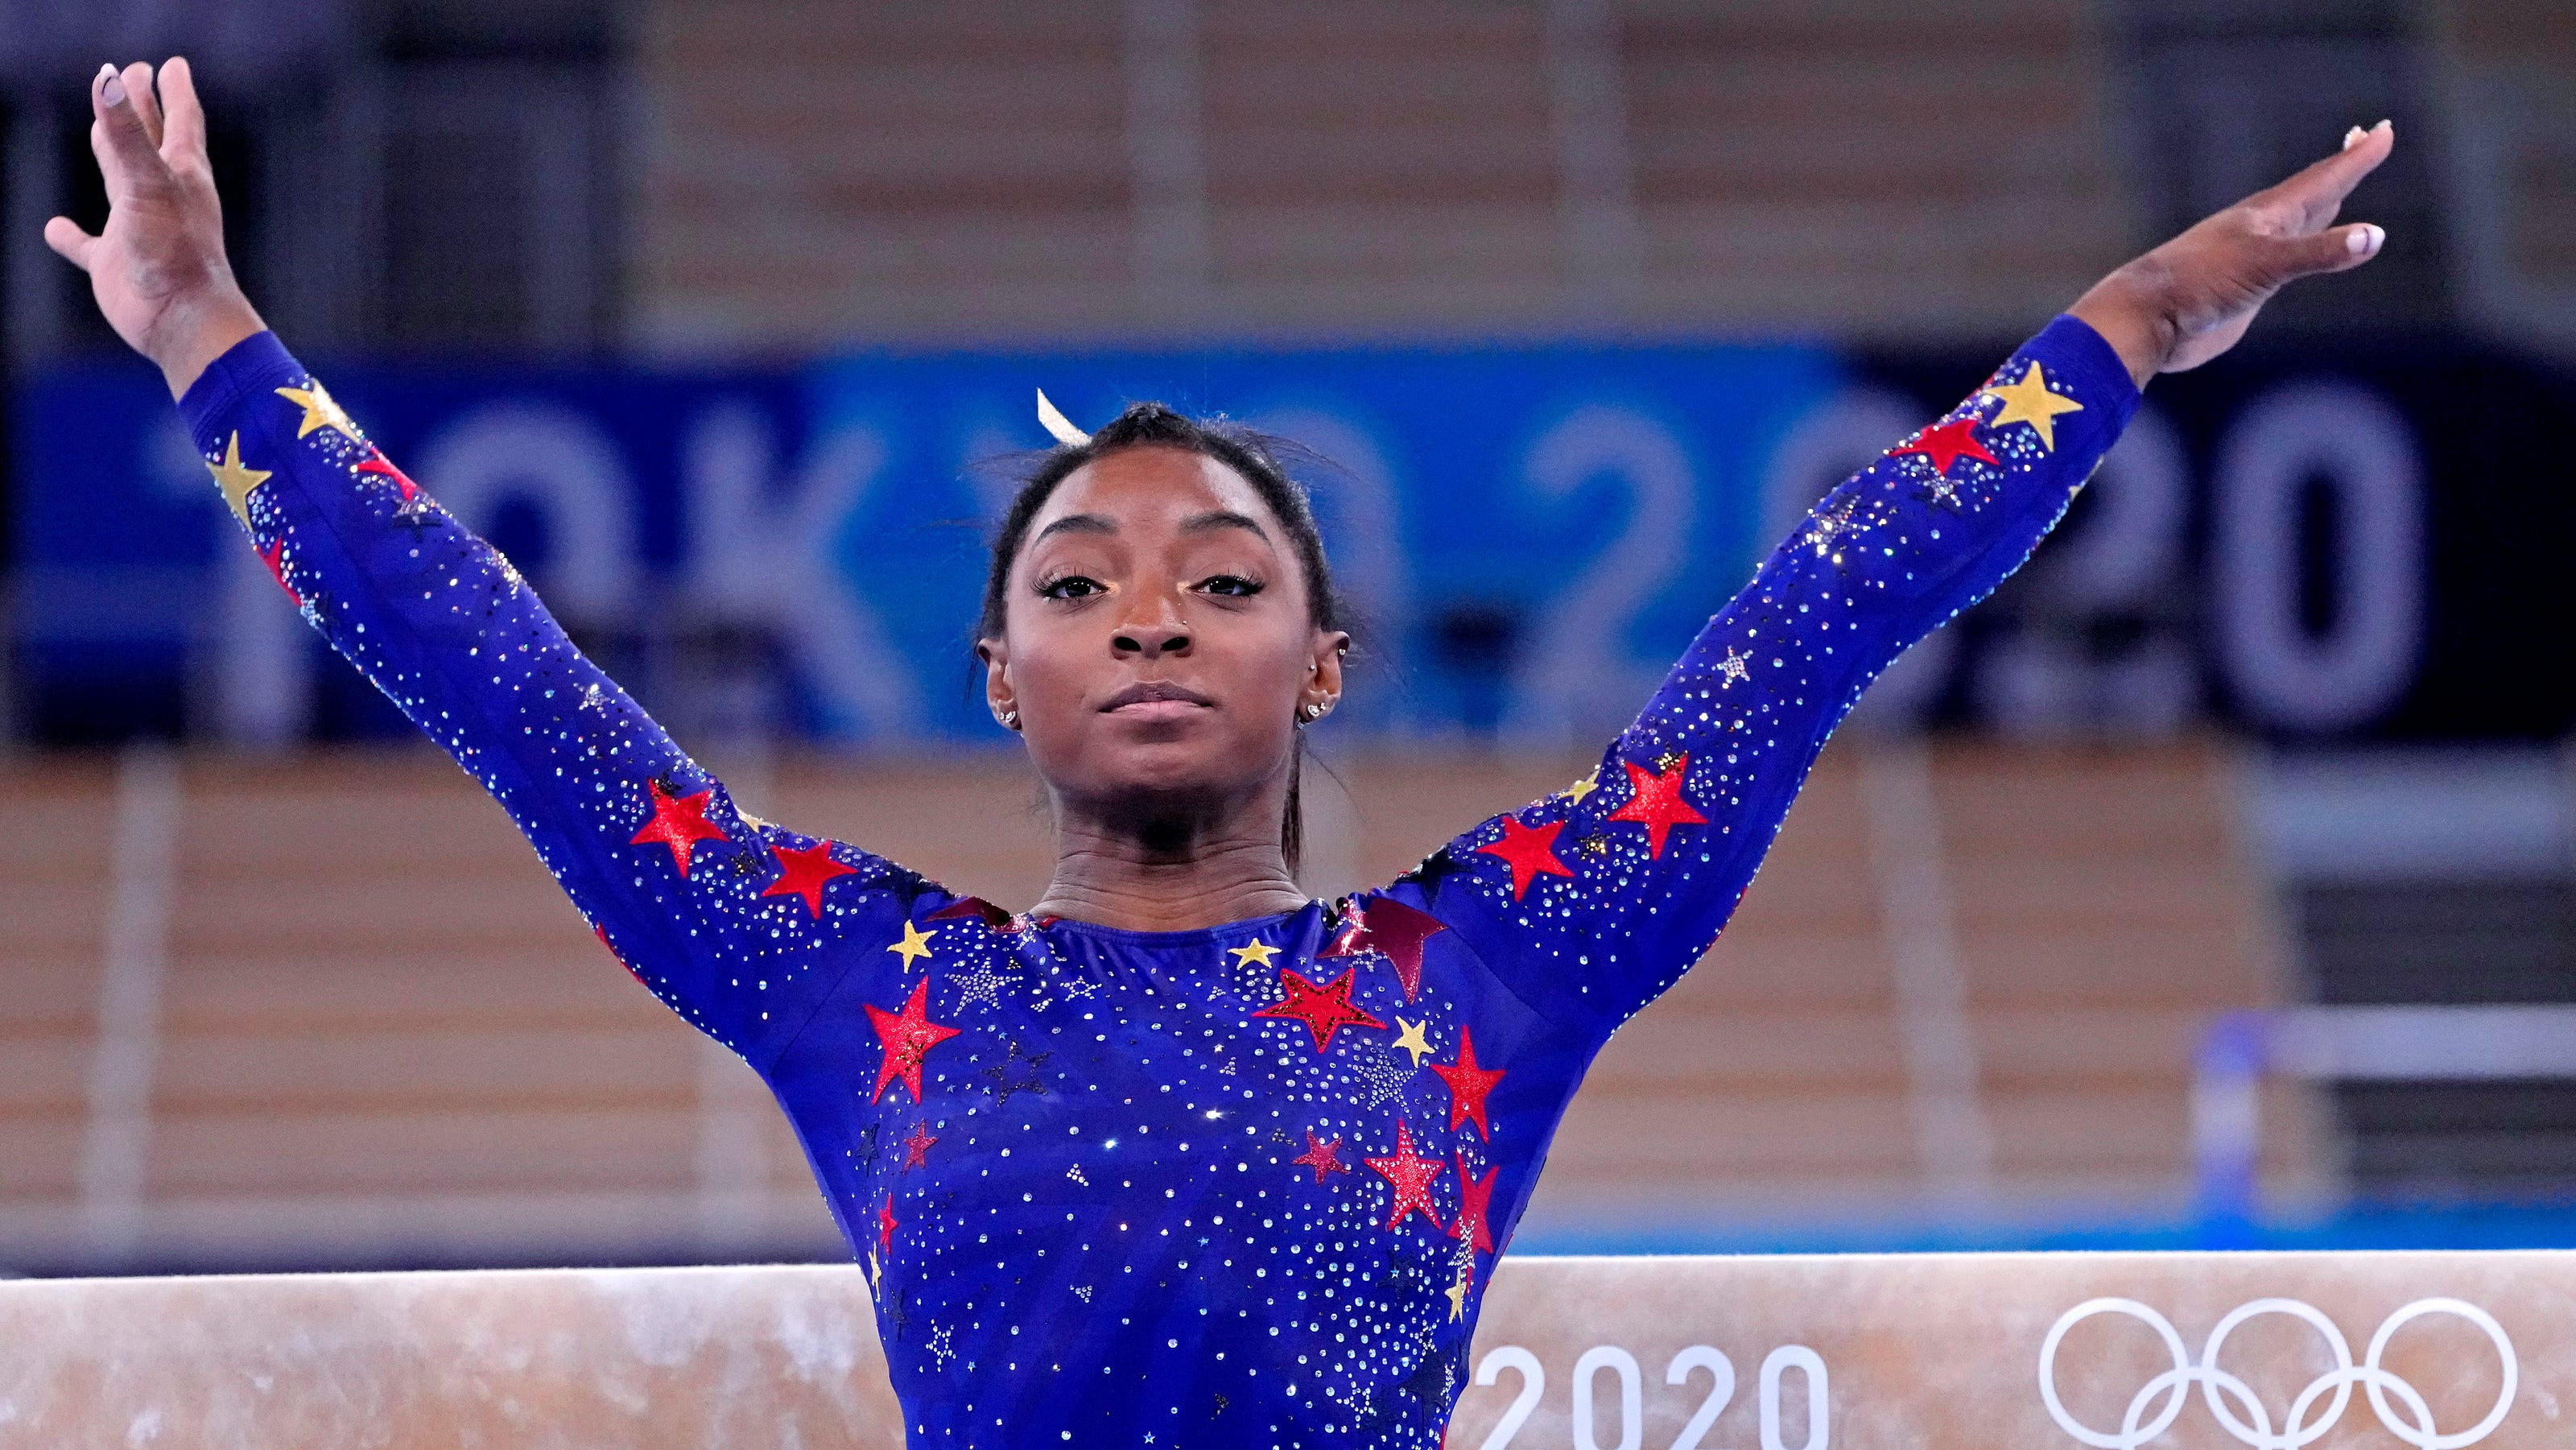 Tokyo Olympics live updates: Simone Biles returns, Team USA squads begin knockout rounds